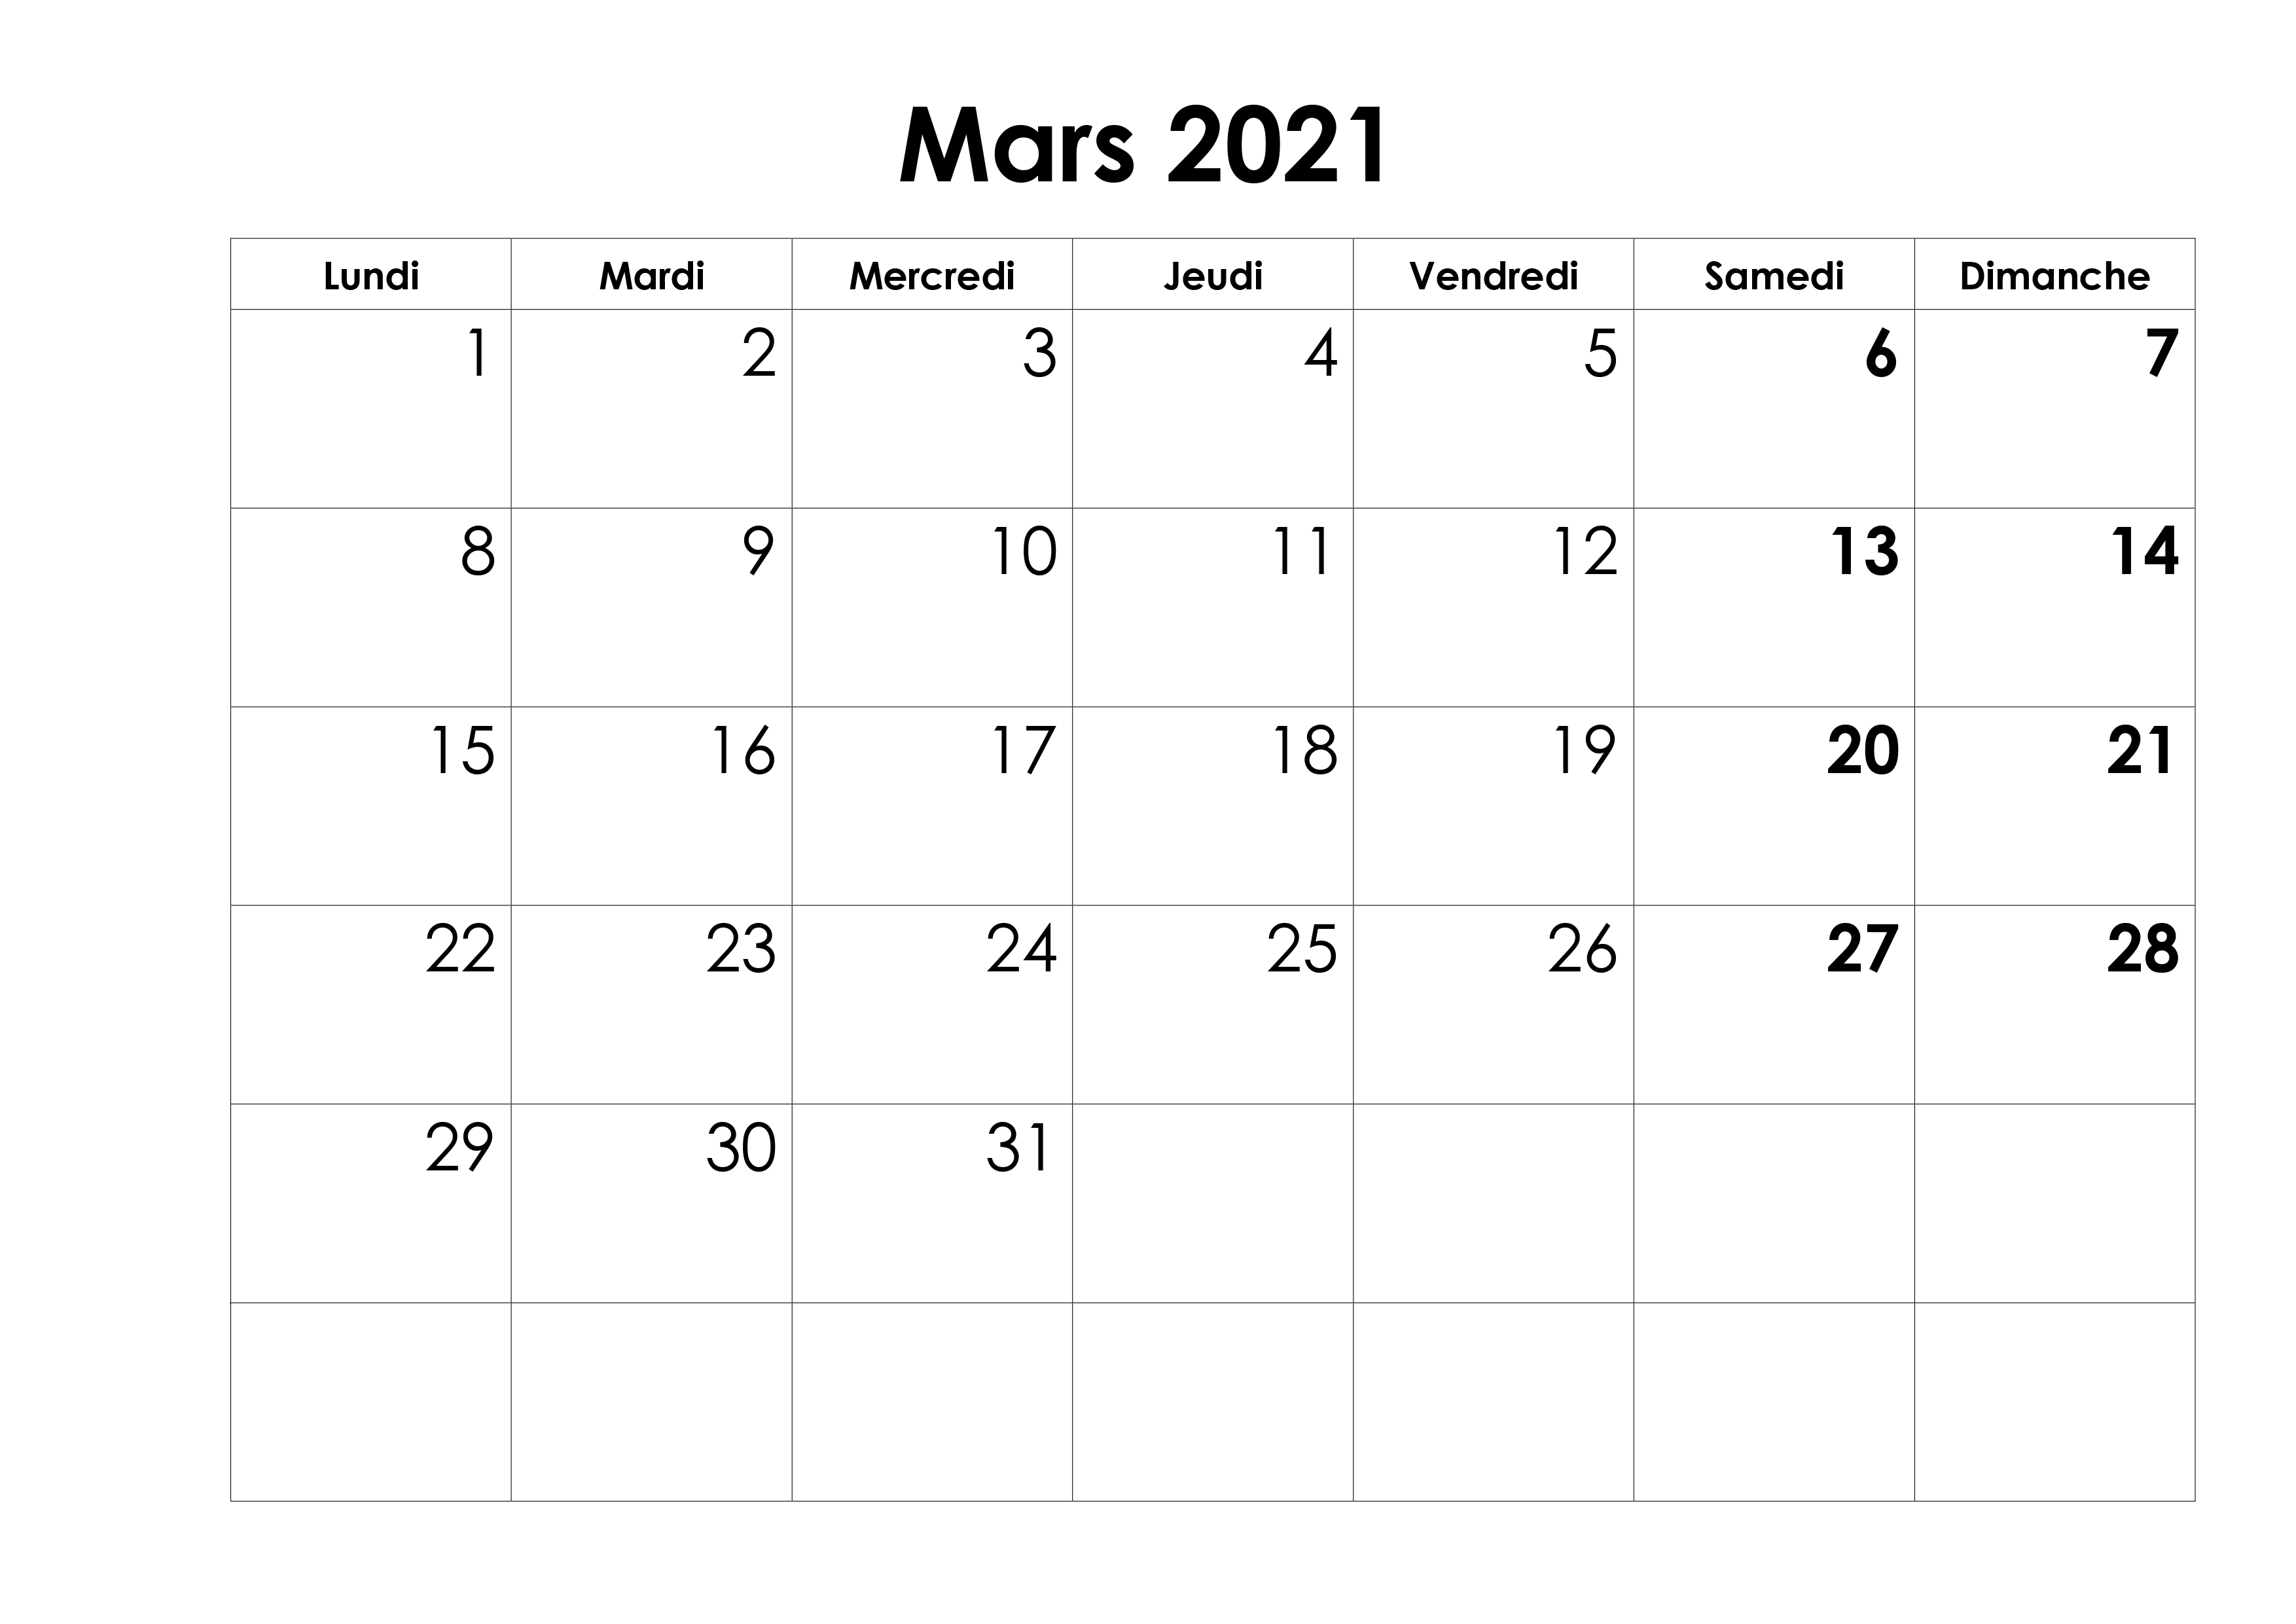 Mars Calendrier 2021 Calendrier Mars 2021 Modèles Imprimables [PDF,Word,Excel] | The